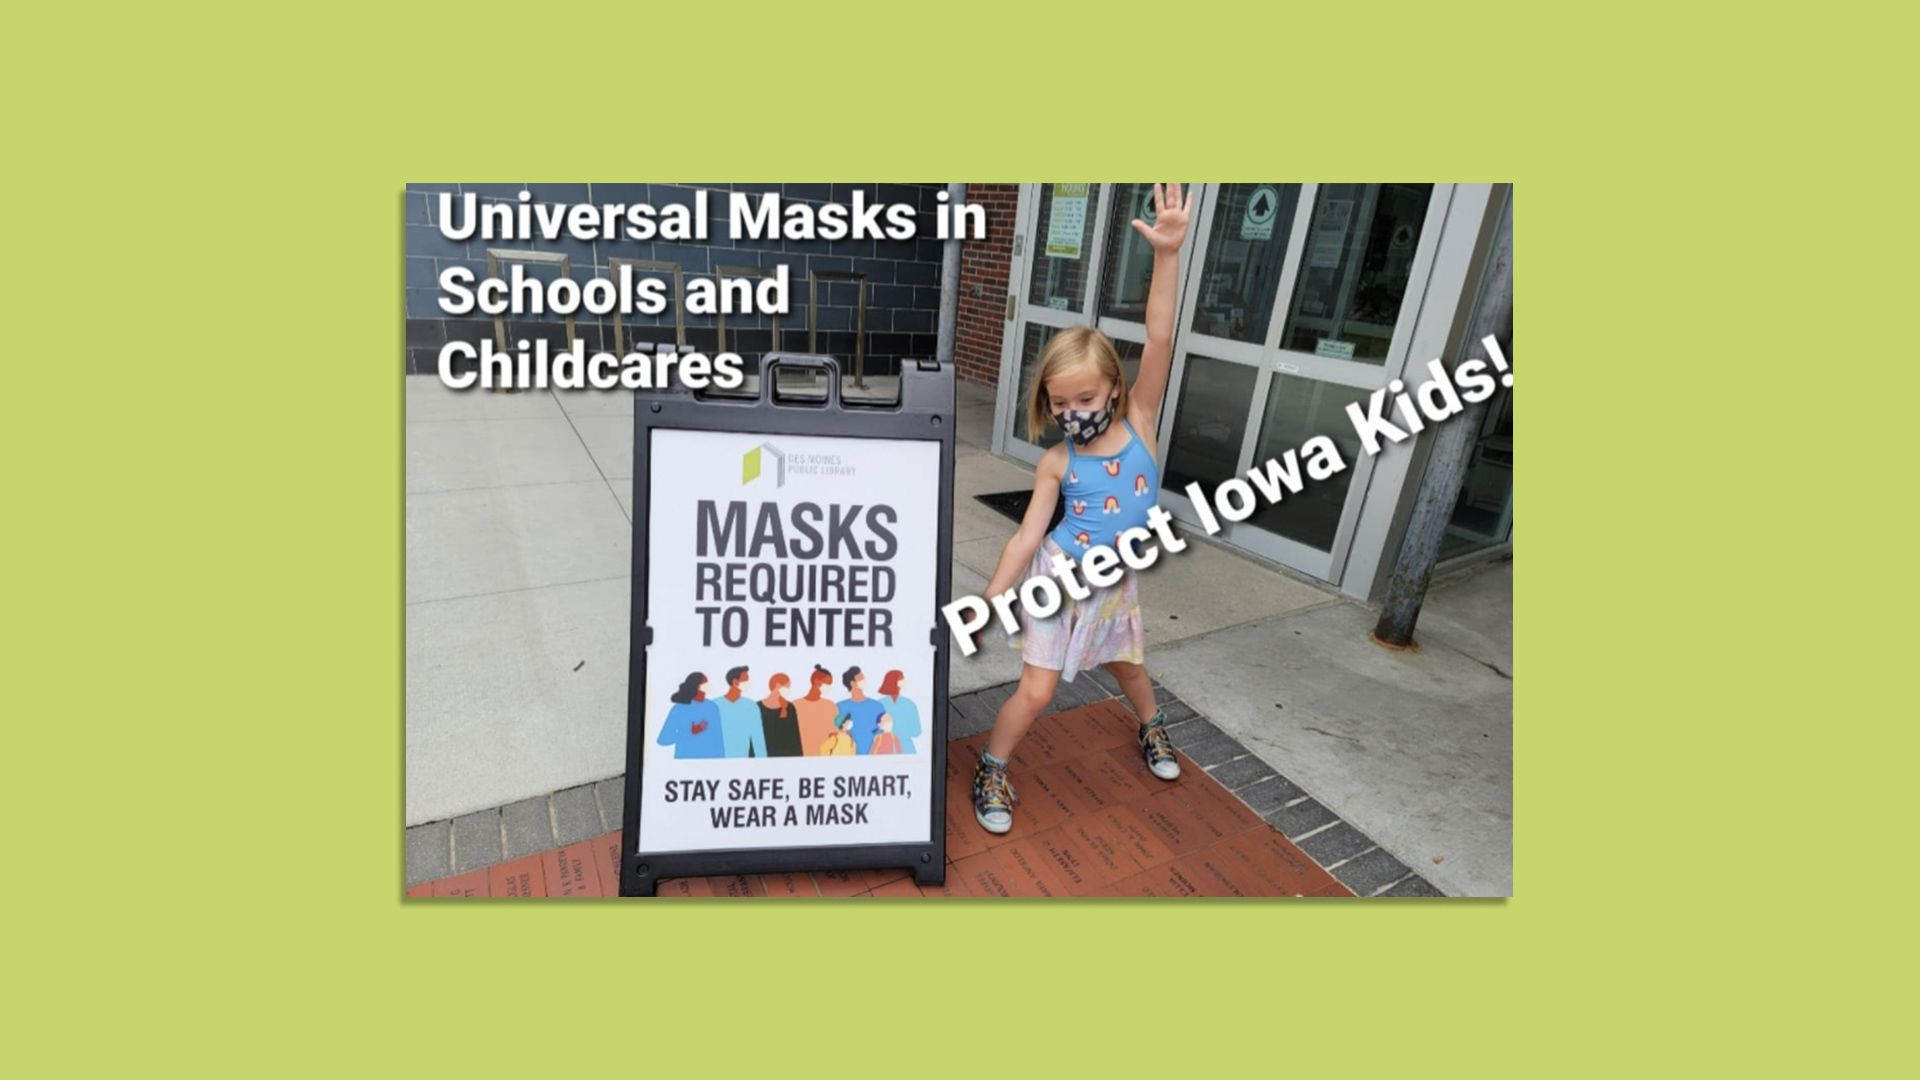 """A photo of a young girl wearing a mask by a sign that says """"Masks required to enter."""""""